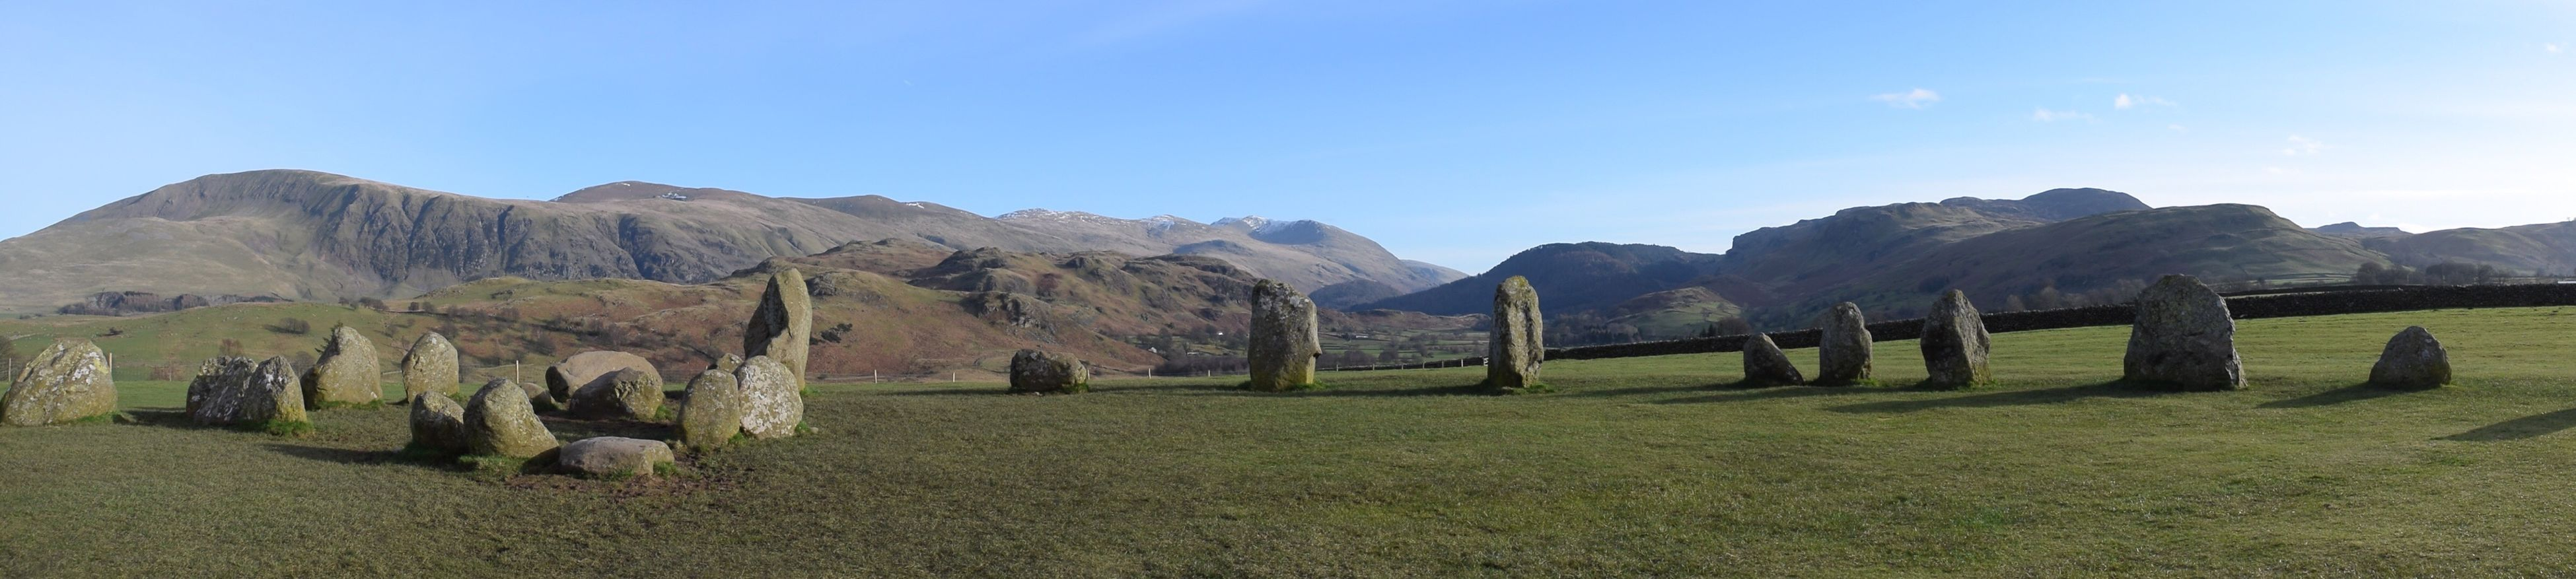 Casterigg Stone Circle • Keswick • The Lake District (Feb, 2017) | Castlerigg Stone Circle Keswick Lakedistrict Nature Stones Panoramic Nikond3300 Landscape Mountain Range Grass No People Clear Sky Tranquility Outdoors Mountain Green Color